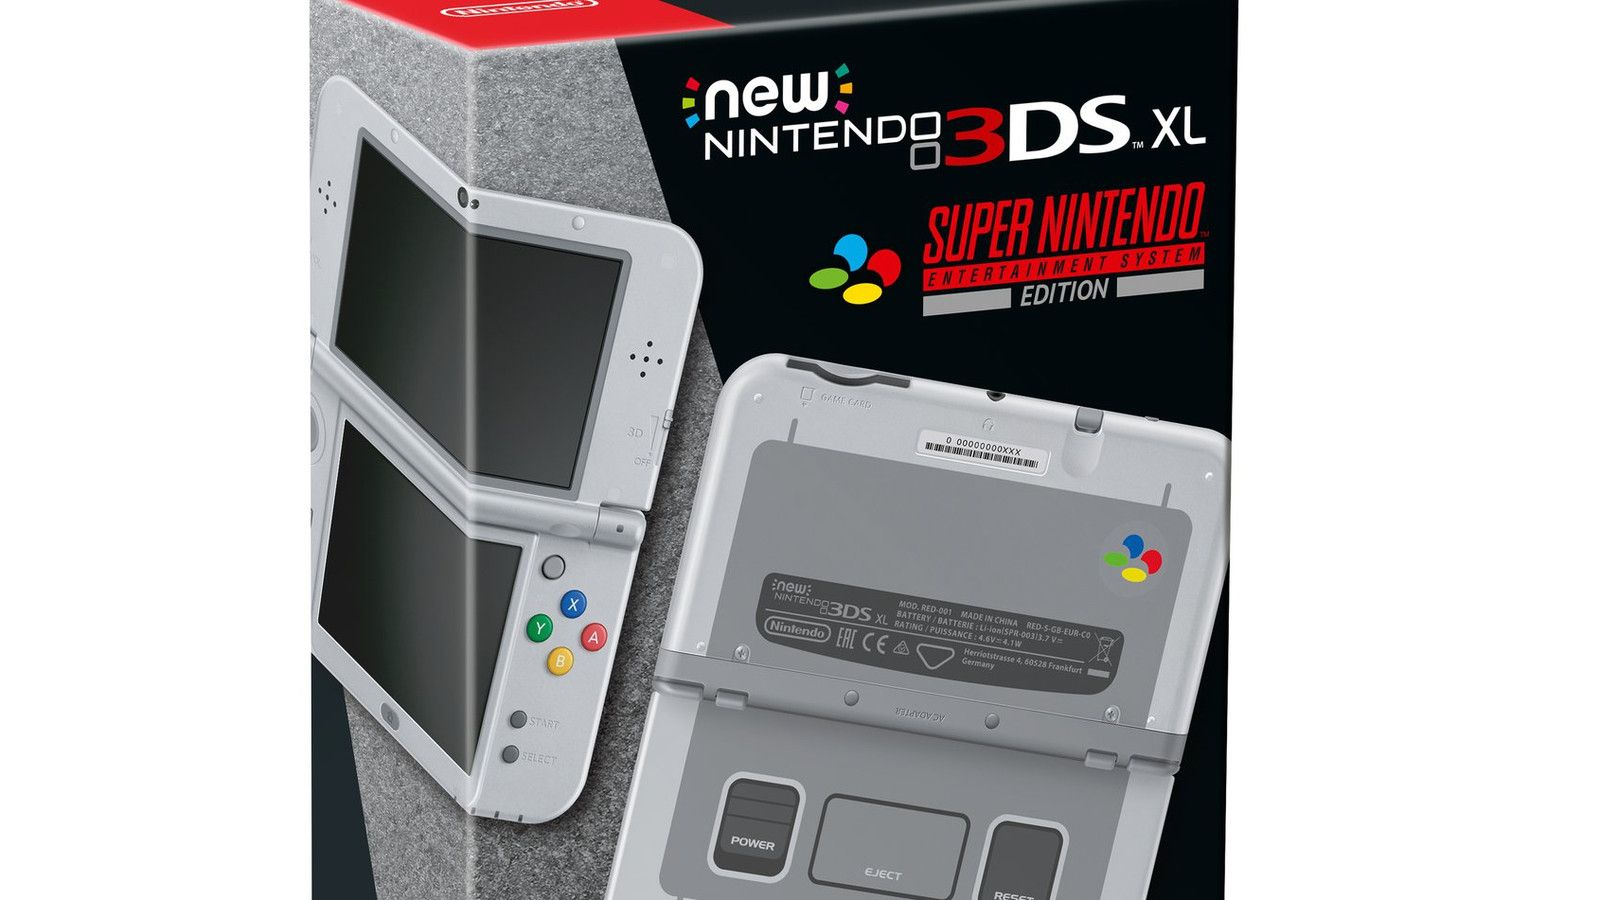 Nintendo's amazing SNES-styled 3DS is sadly only coming to Europe